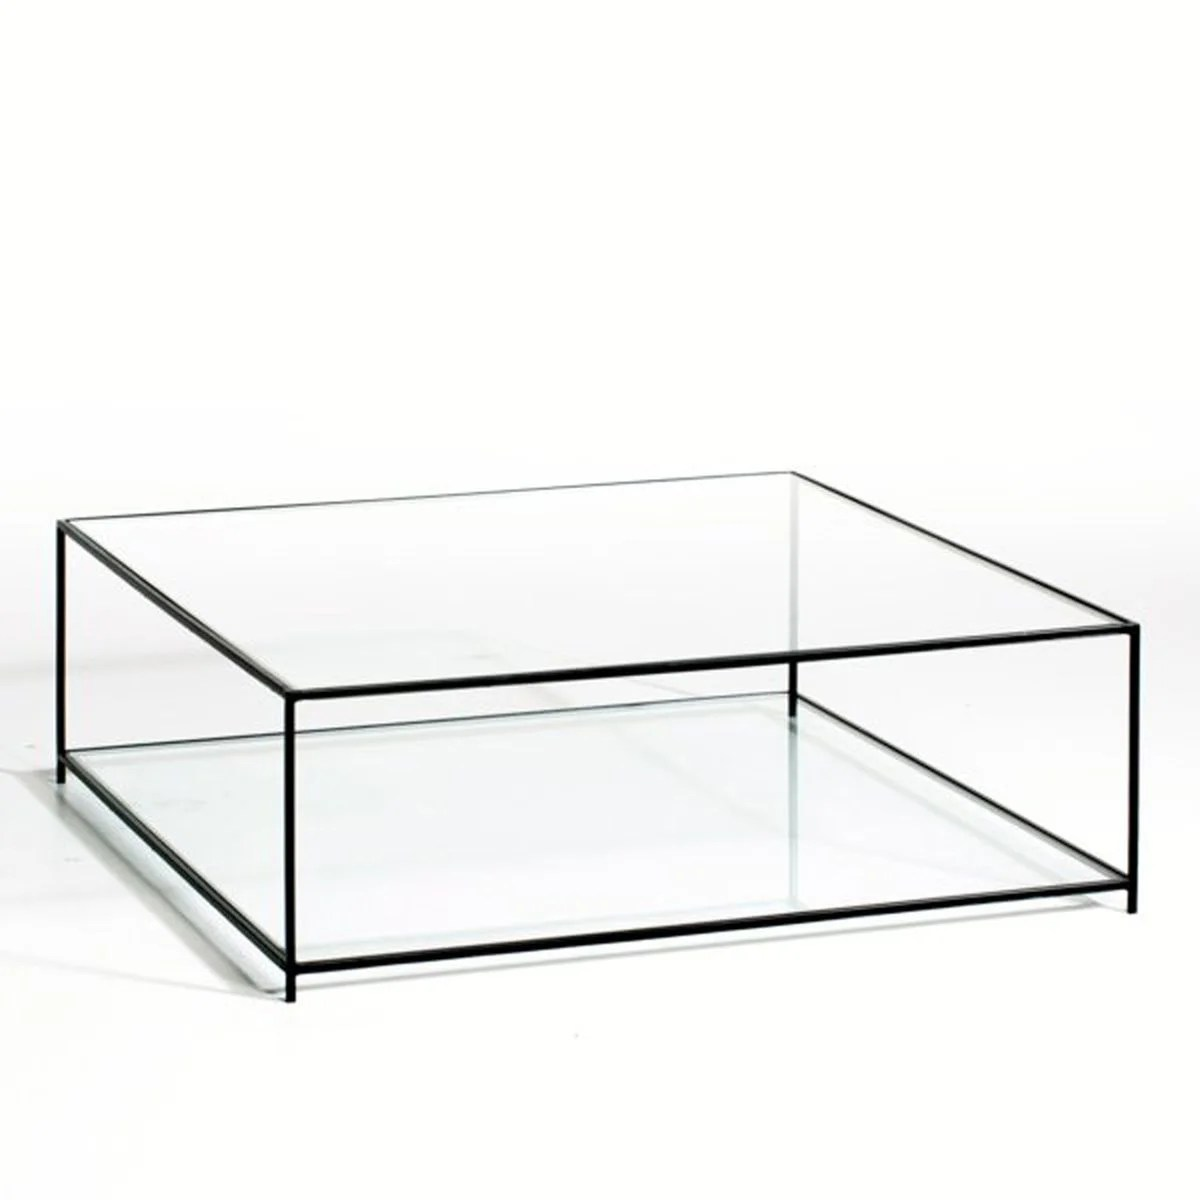 table basse carree verre trempe sybil